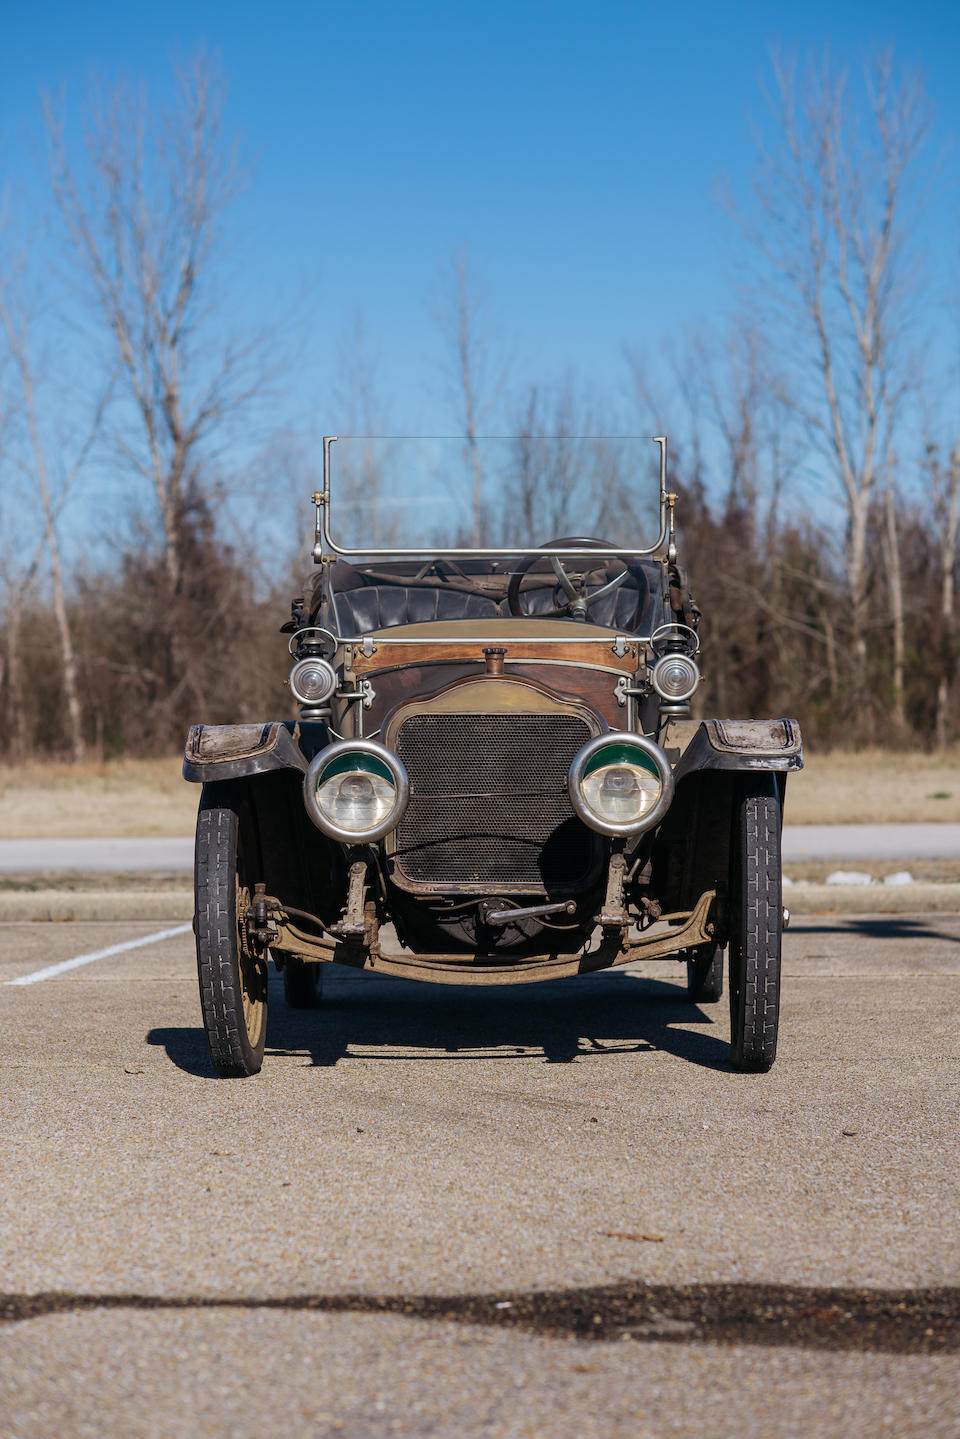 <b>1912 White Model 30 G.A.D. Roadster</b><br />Chassis no. 17143